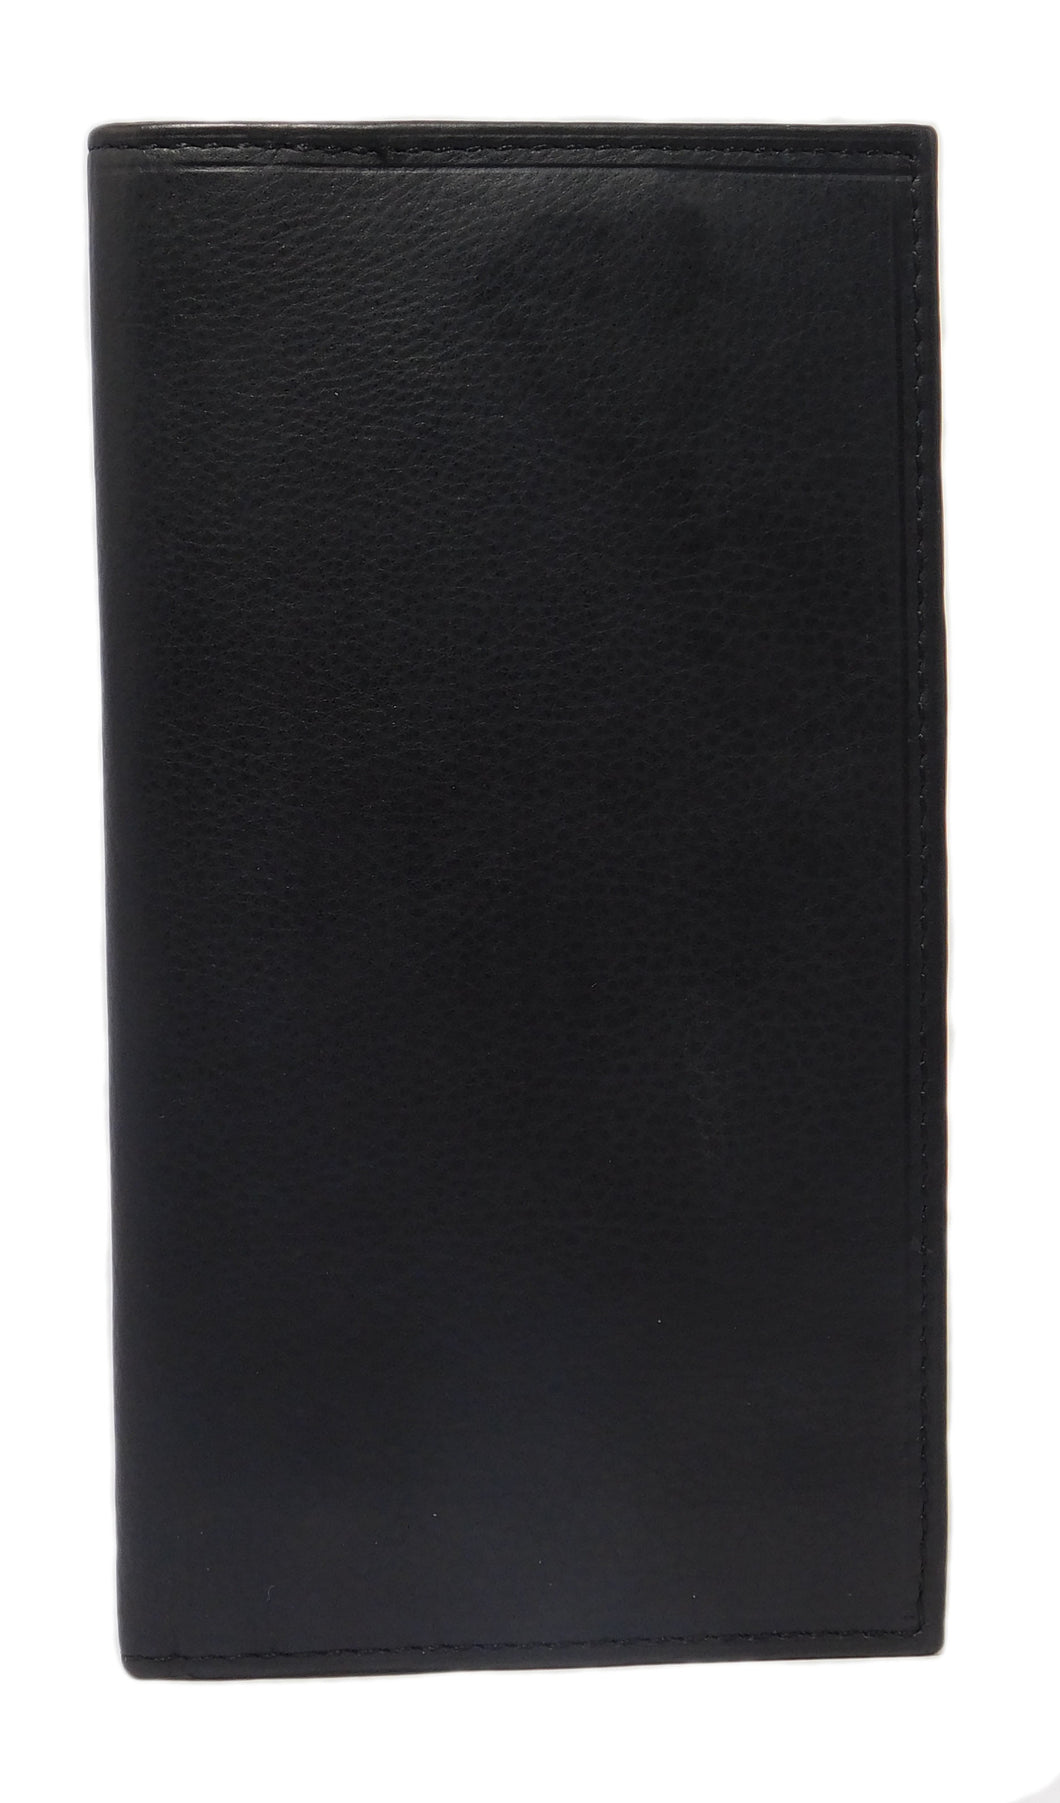 Paul & Taylor Leather Checkbook Wallet Men Or Women RFID Protection - Black